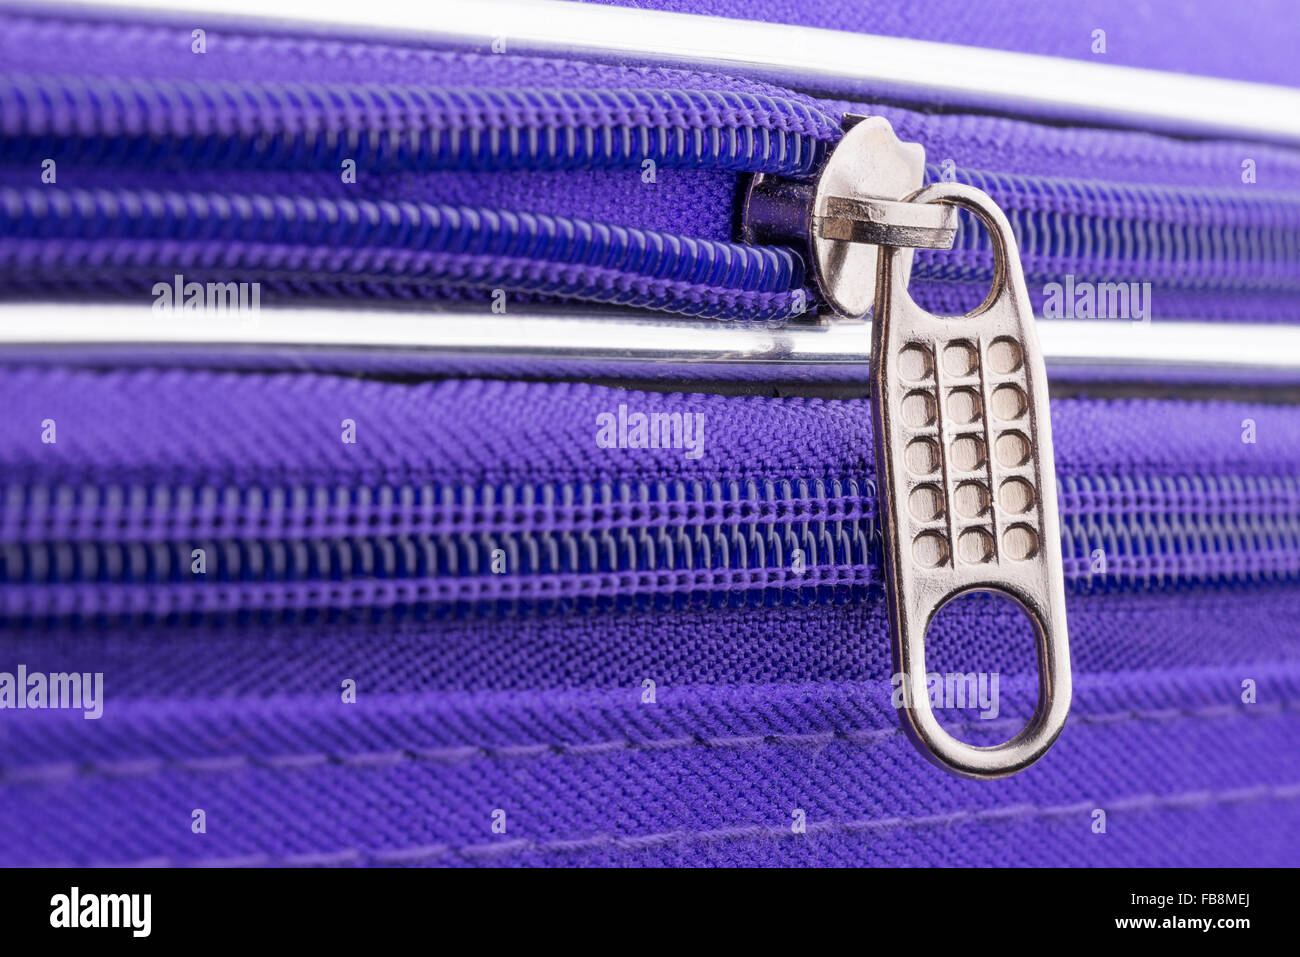 Macro of a zipper showing the pull tab and the chain on a violet suitcase ready for a safe holiday travel - Stock Image